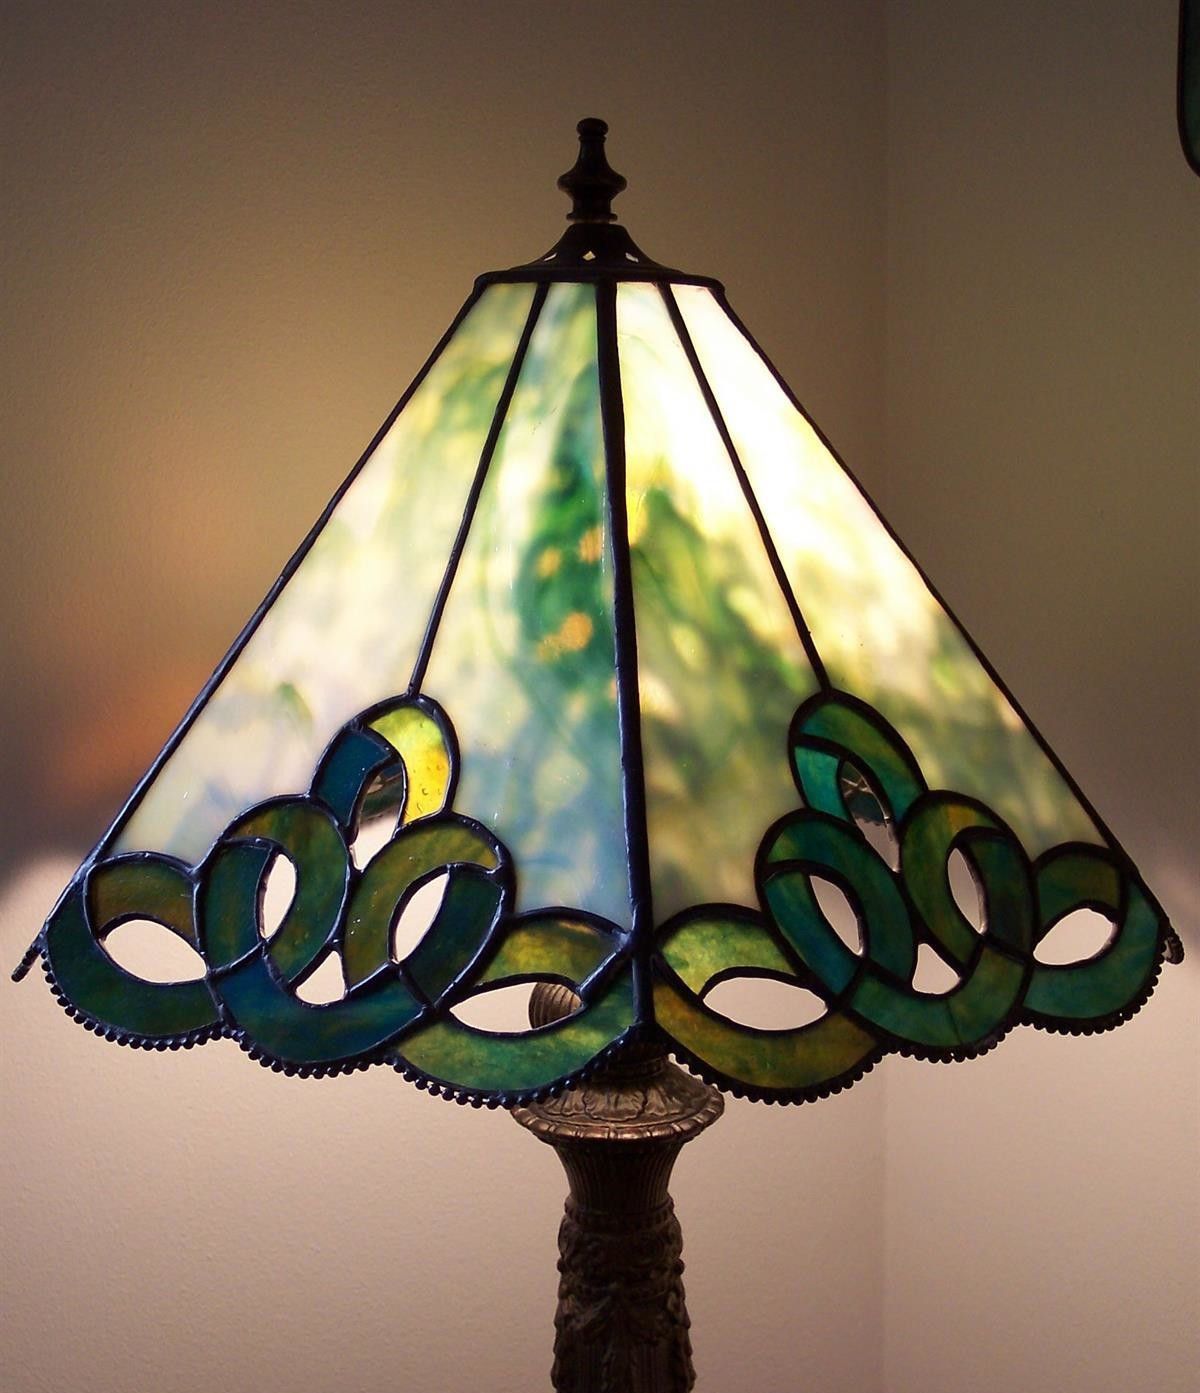 Stained glass lamp class example.